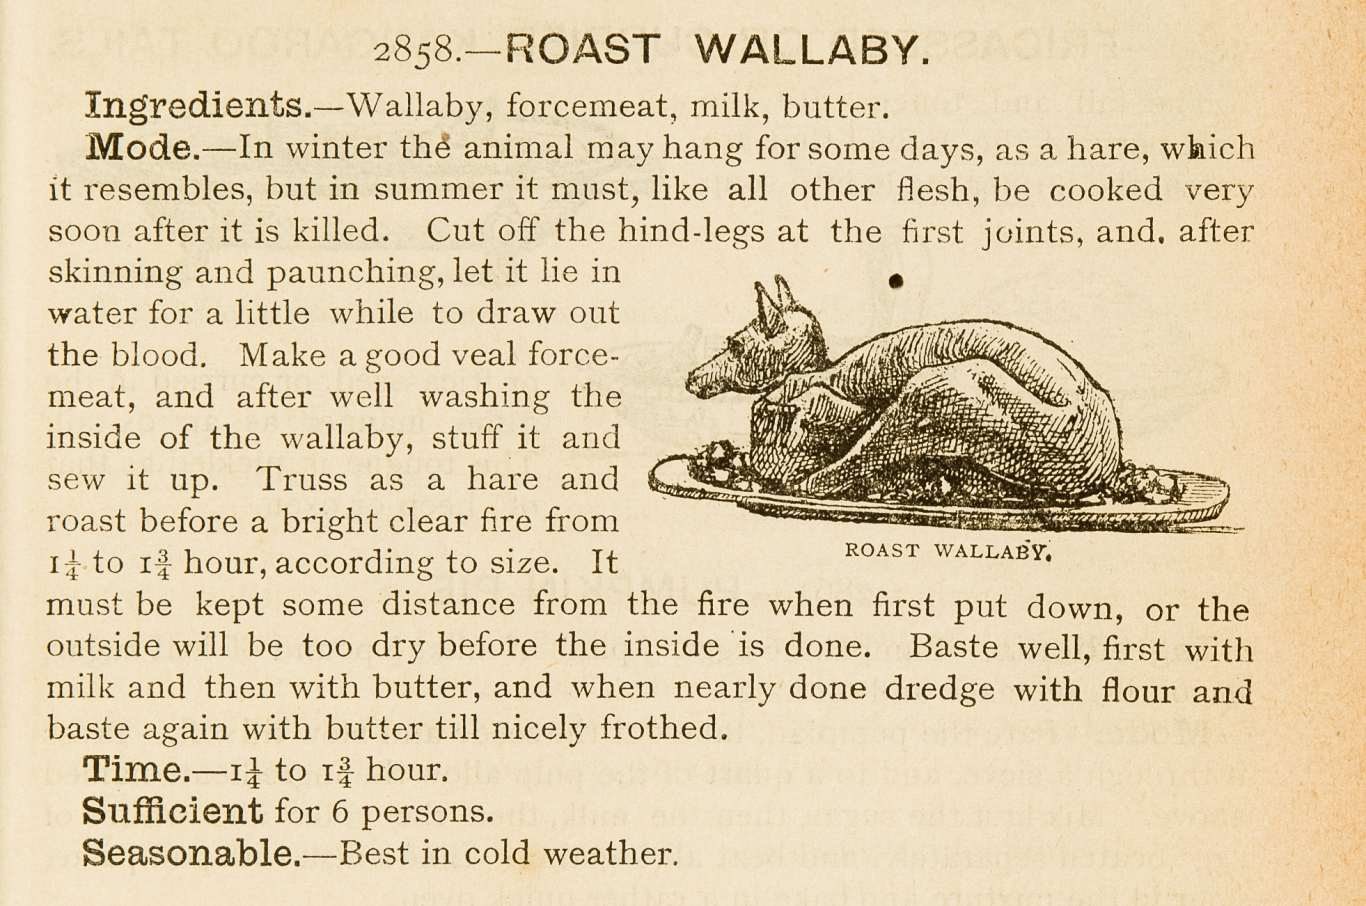 Recipe from old book with illustration of roast wallaby in dish.